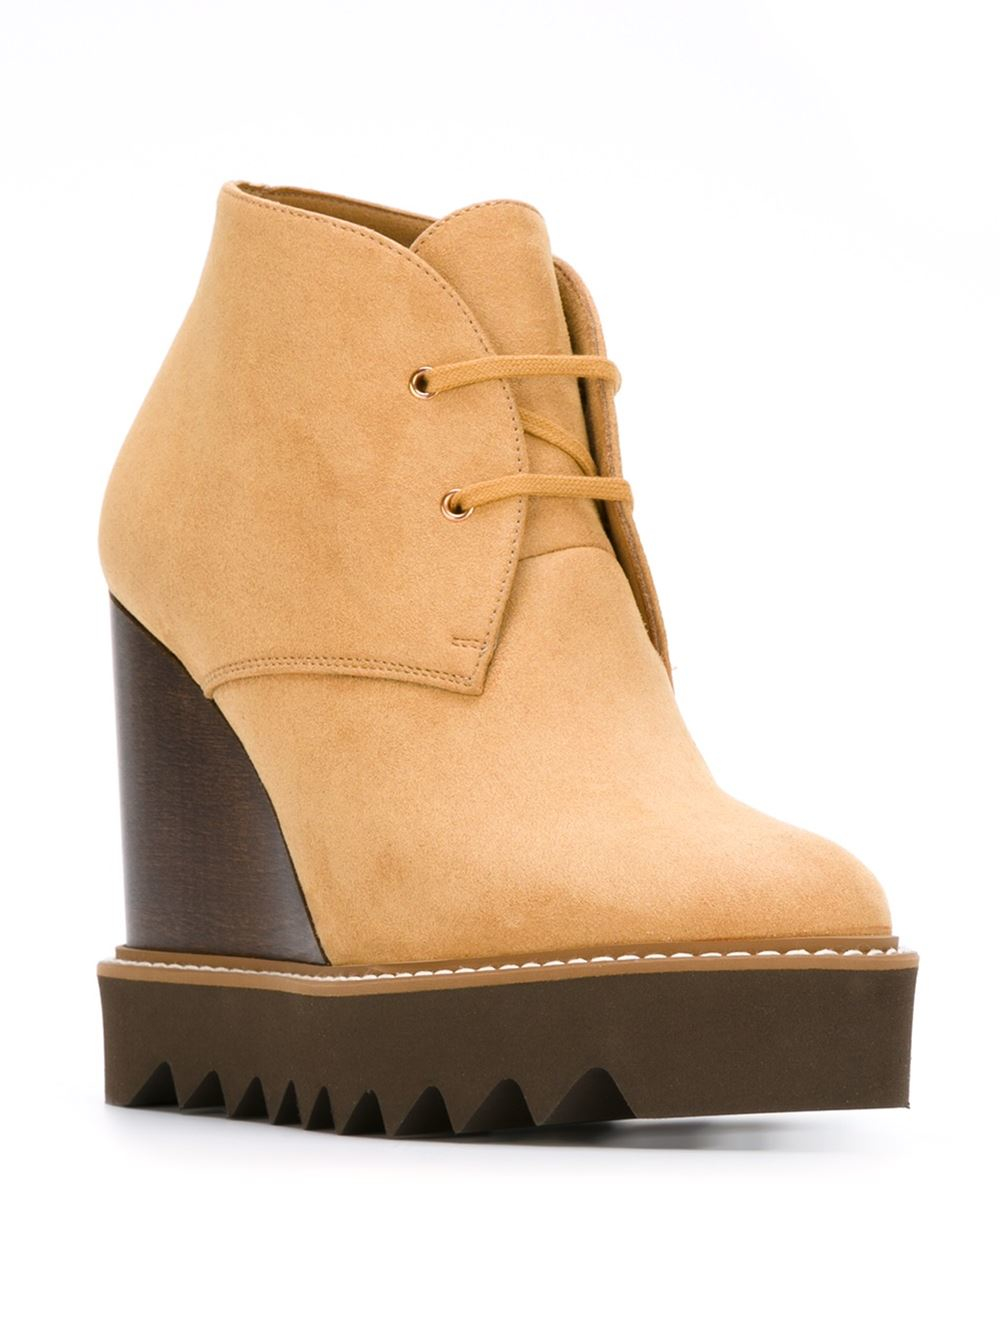 stella mccartney laena wedge boots in brown lyst